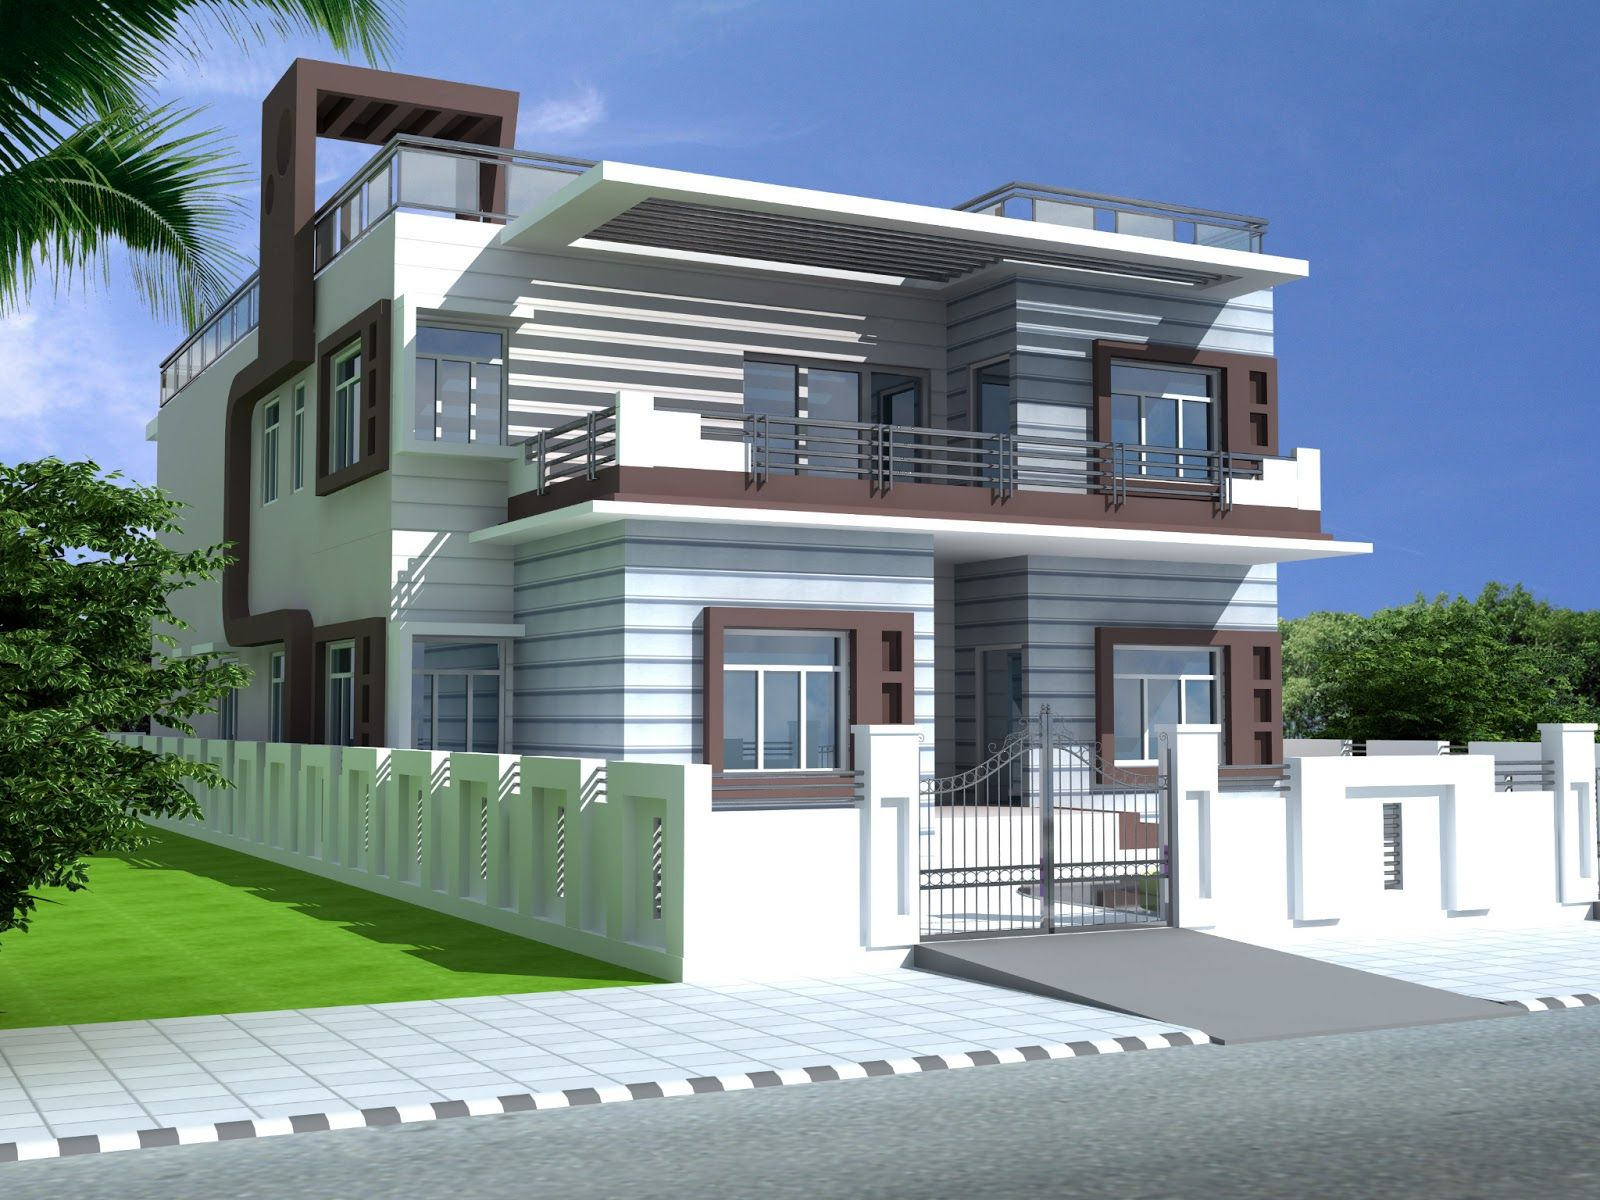 6 Bedrooms Duplex House Design in 390m2 (13m X 30m) ~ Complete ...